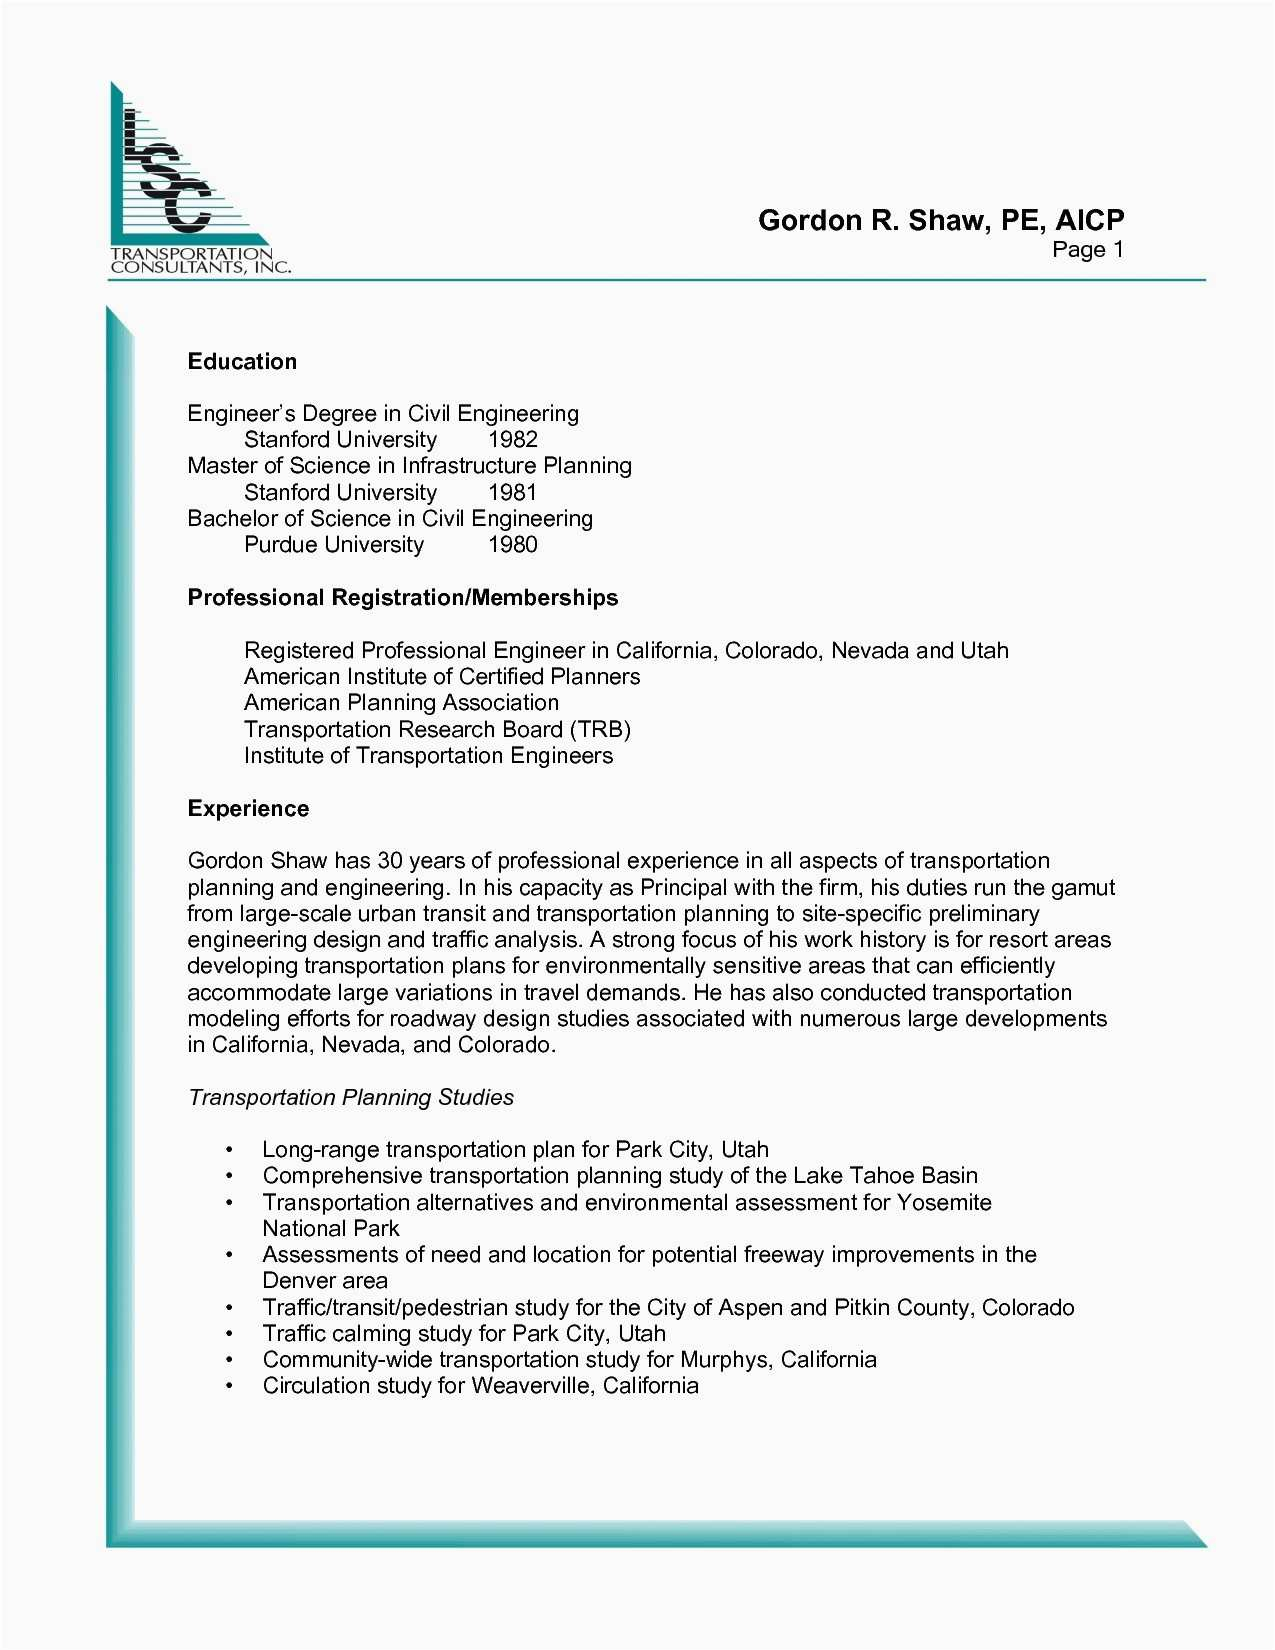 Professional Engineer Resume Template - 26 New Technical Resume Writer Examples